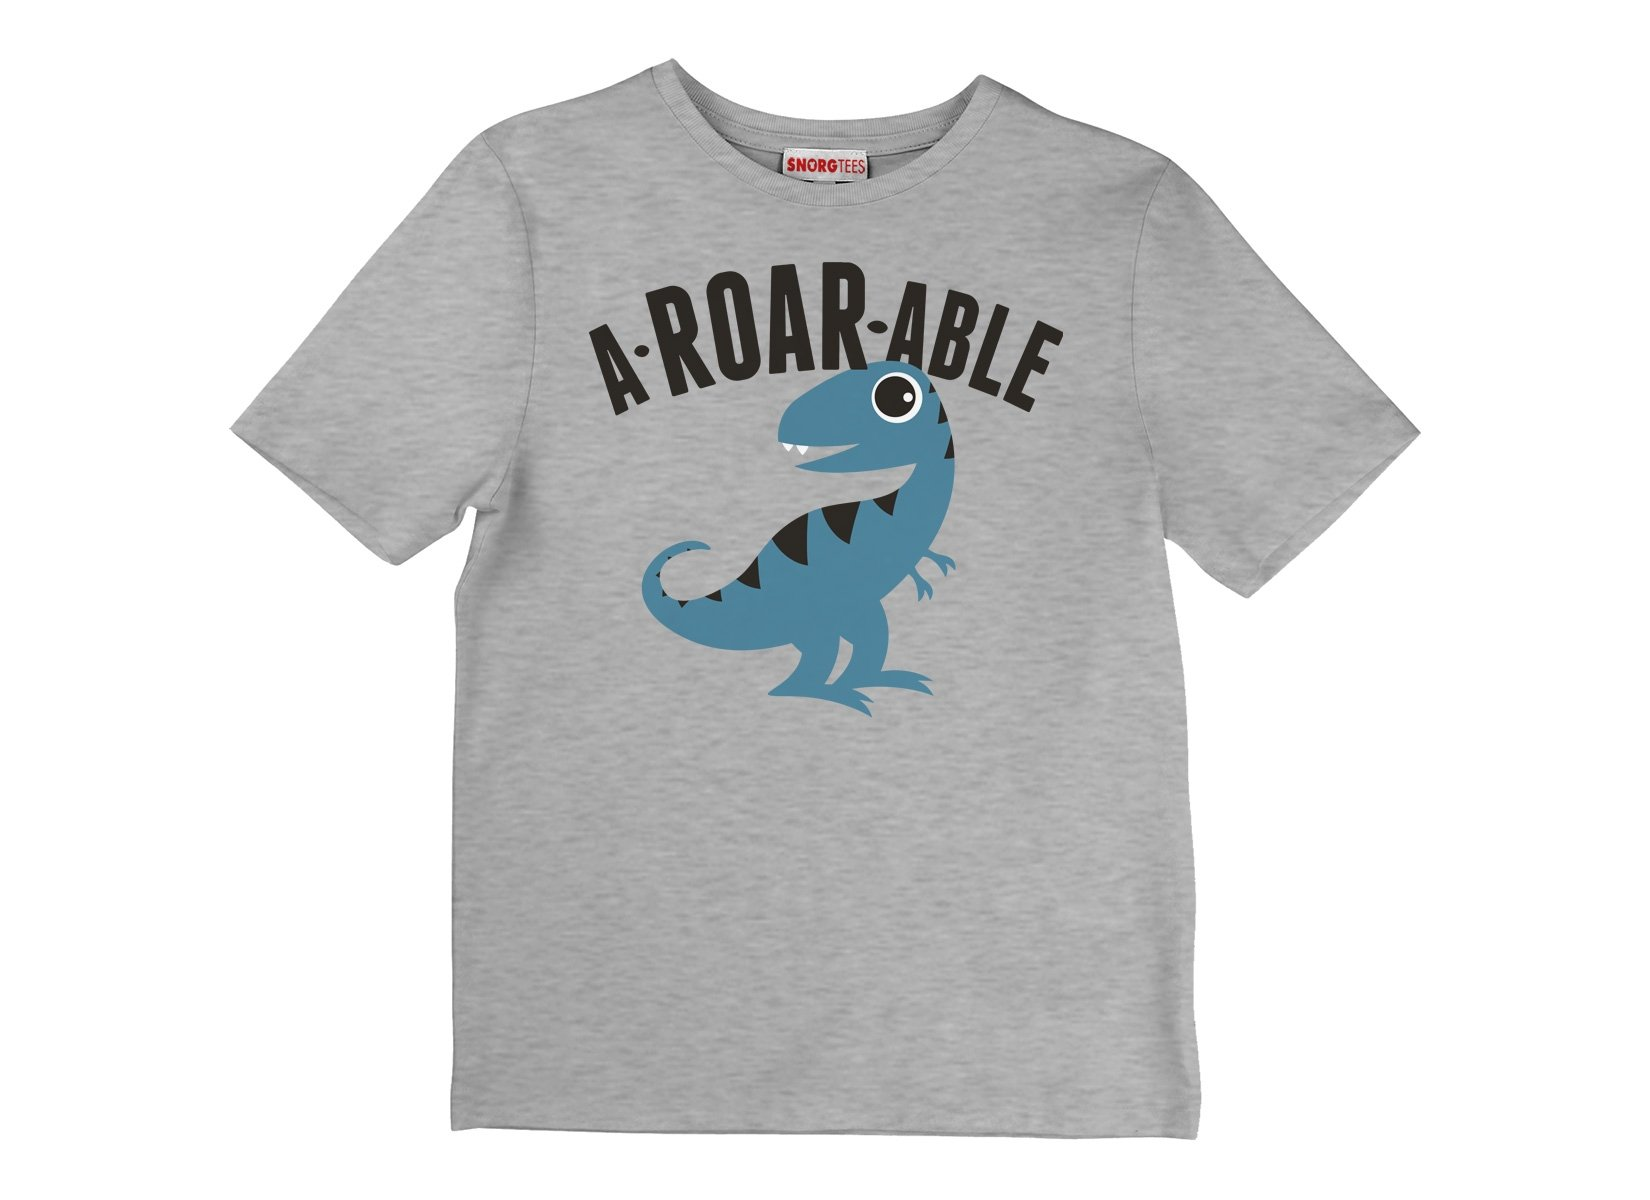 A-Roar-Able on Kids T-Shirt